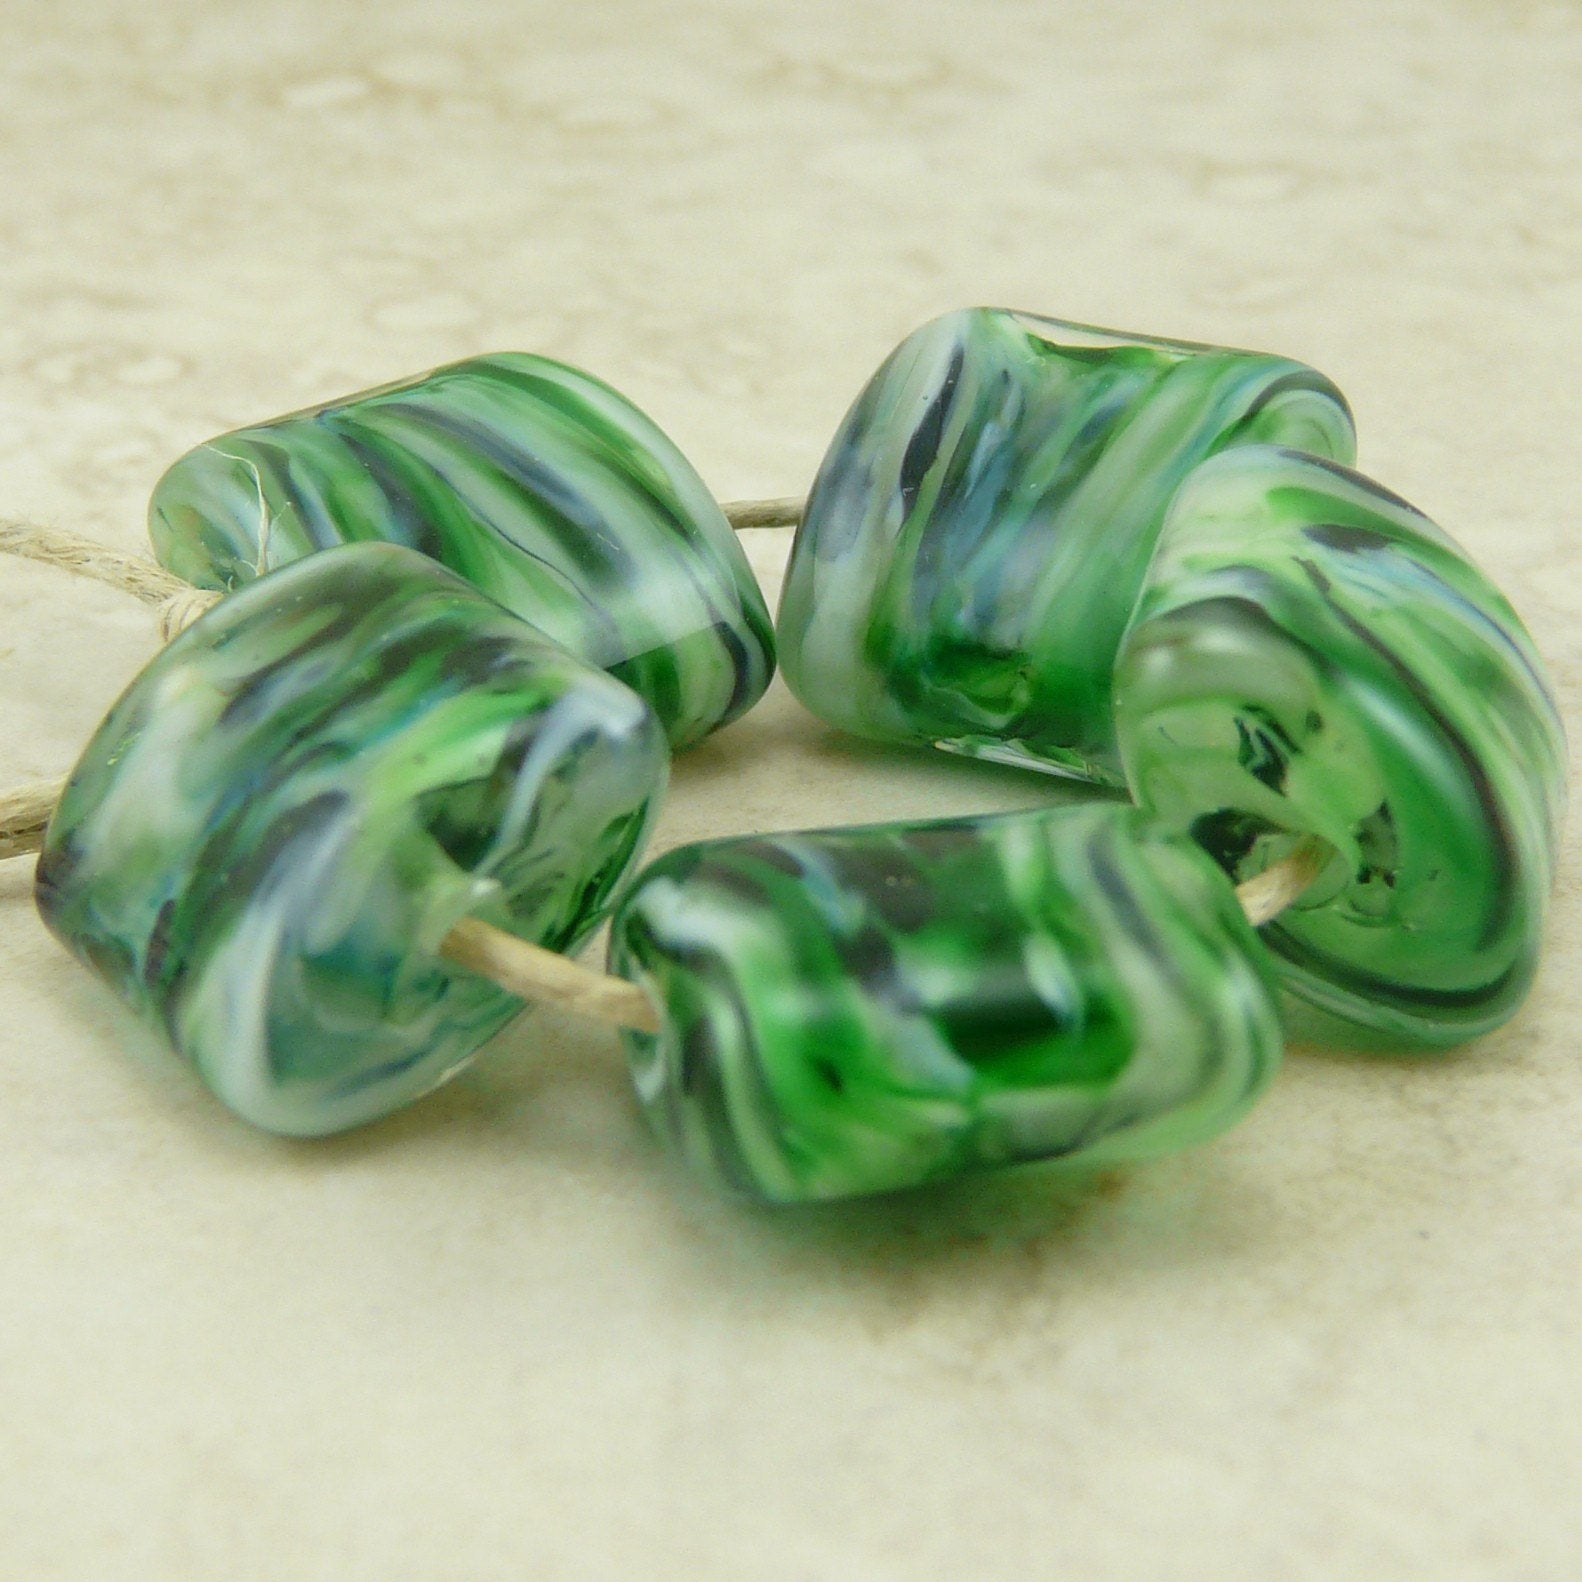 Pine Tree Forest - Lampwork Bead Set by Dragynsfyre Designs - SRA